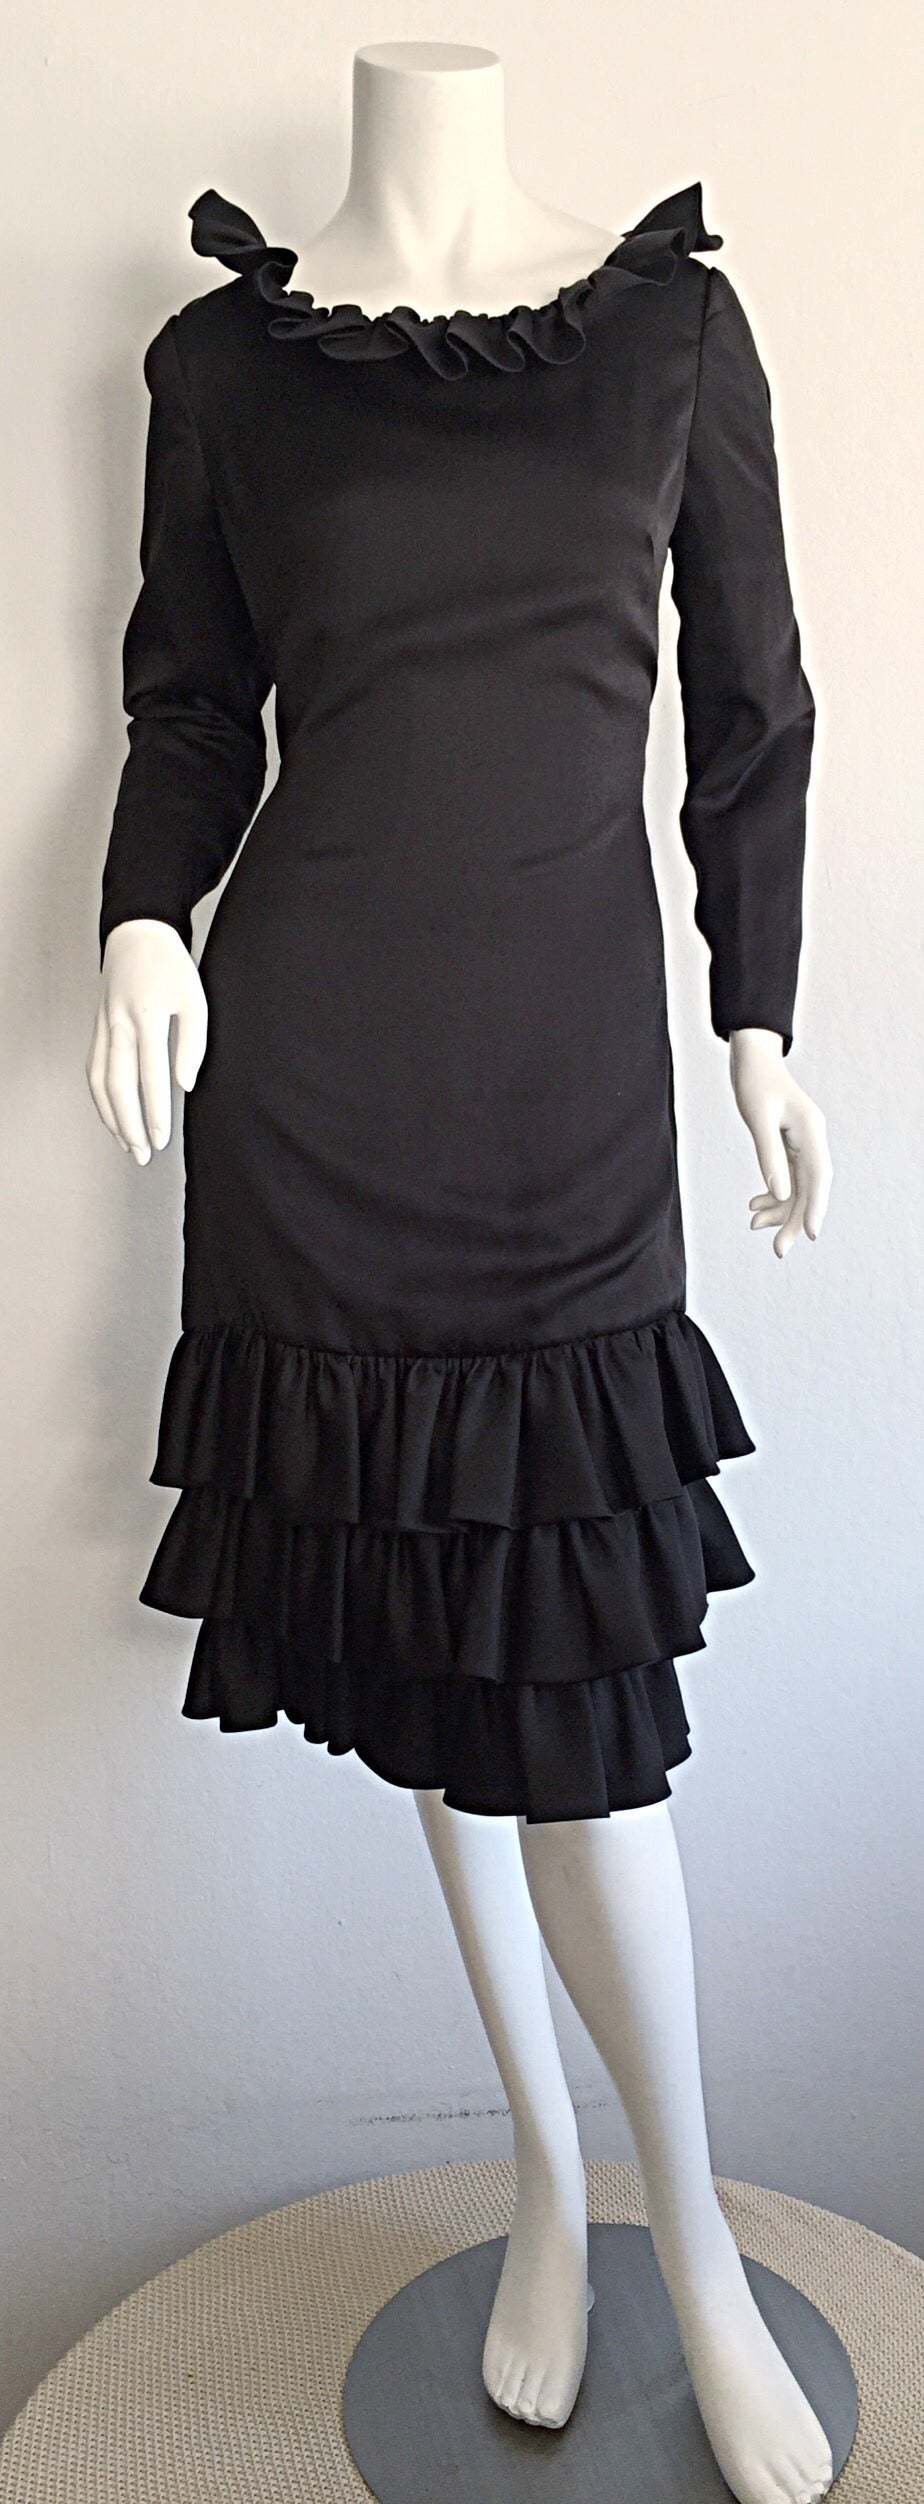 Beautiful 1960s Adele Simpson black silk dress! The PERFECT 'little black dress!' Features three tiers of ruffles at hem, with matching ruffle at neck. Such a chic, classic dress. Looks great alone, or with a belt. Fully lined. Hidden zipper up the